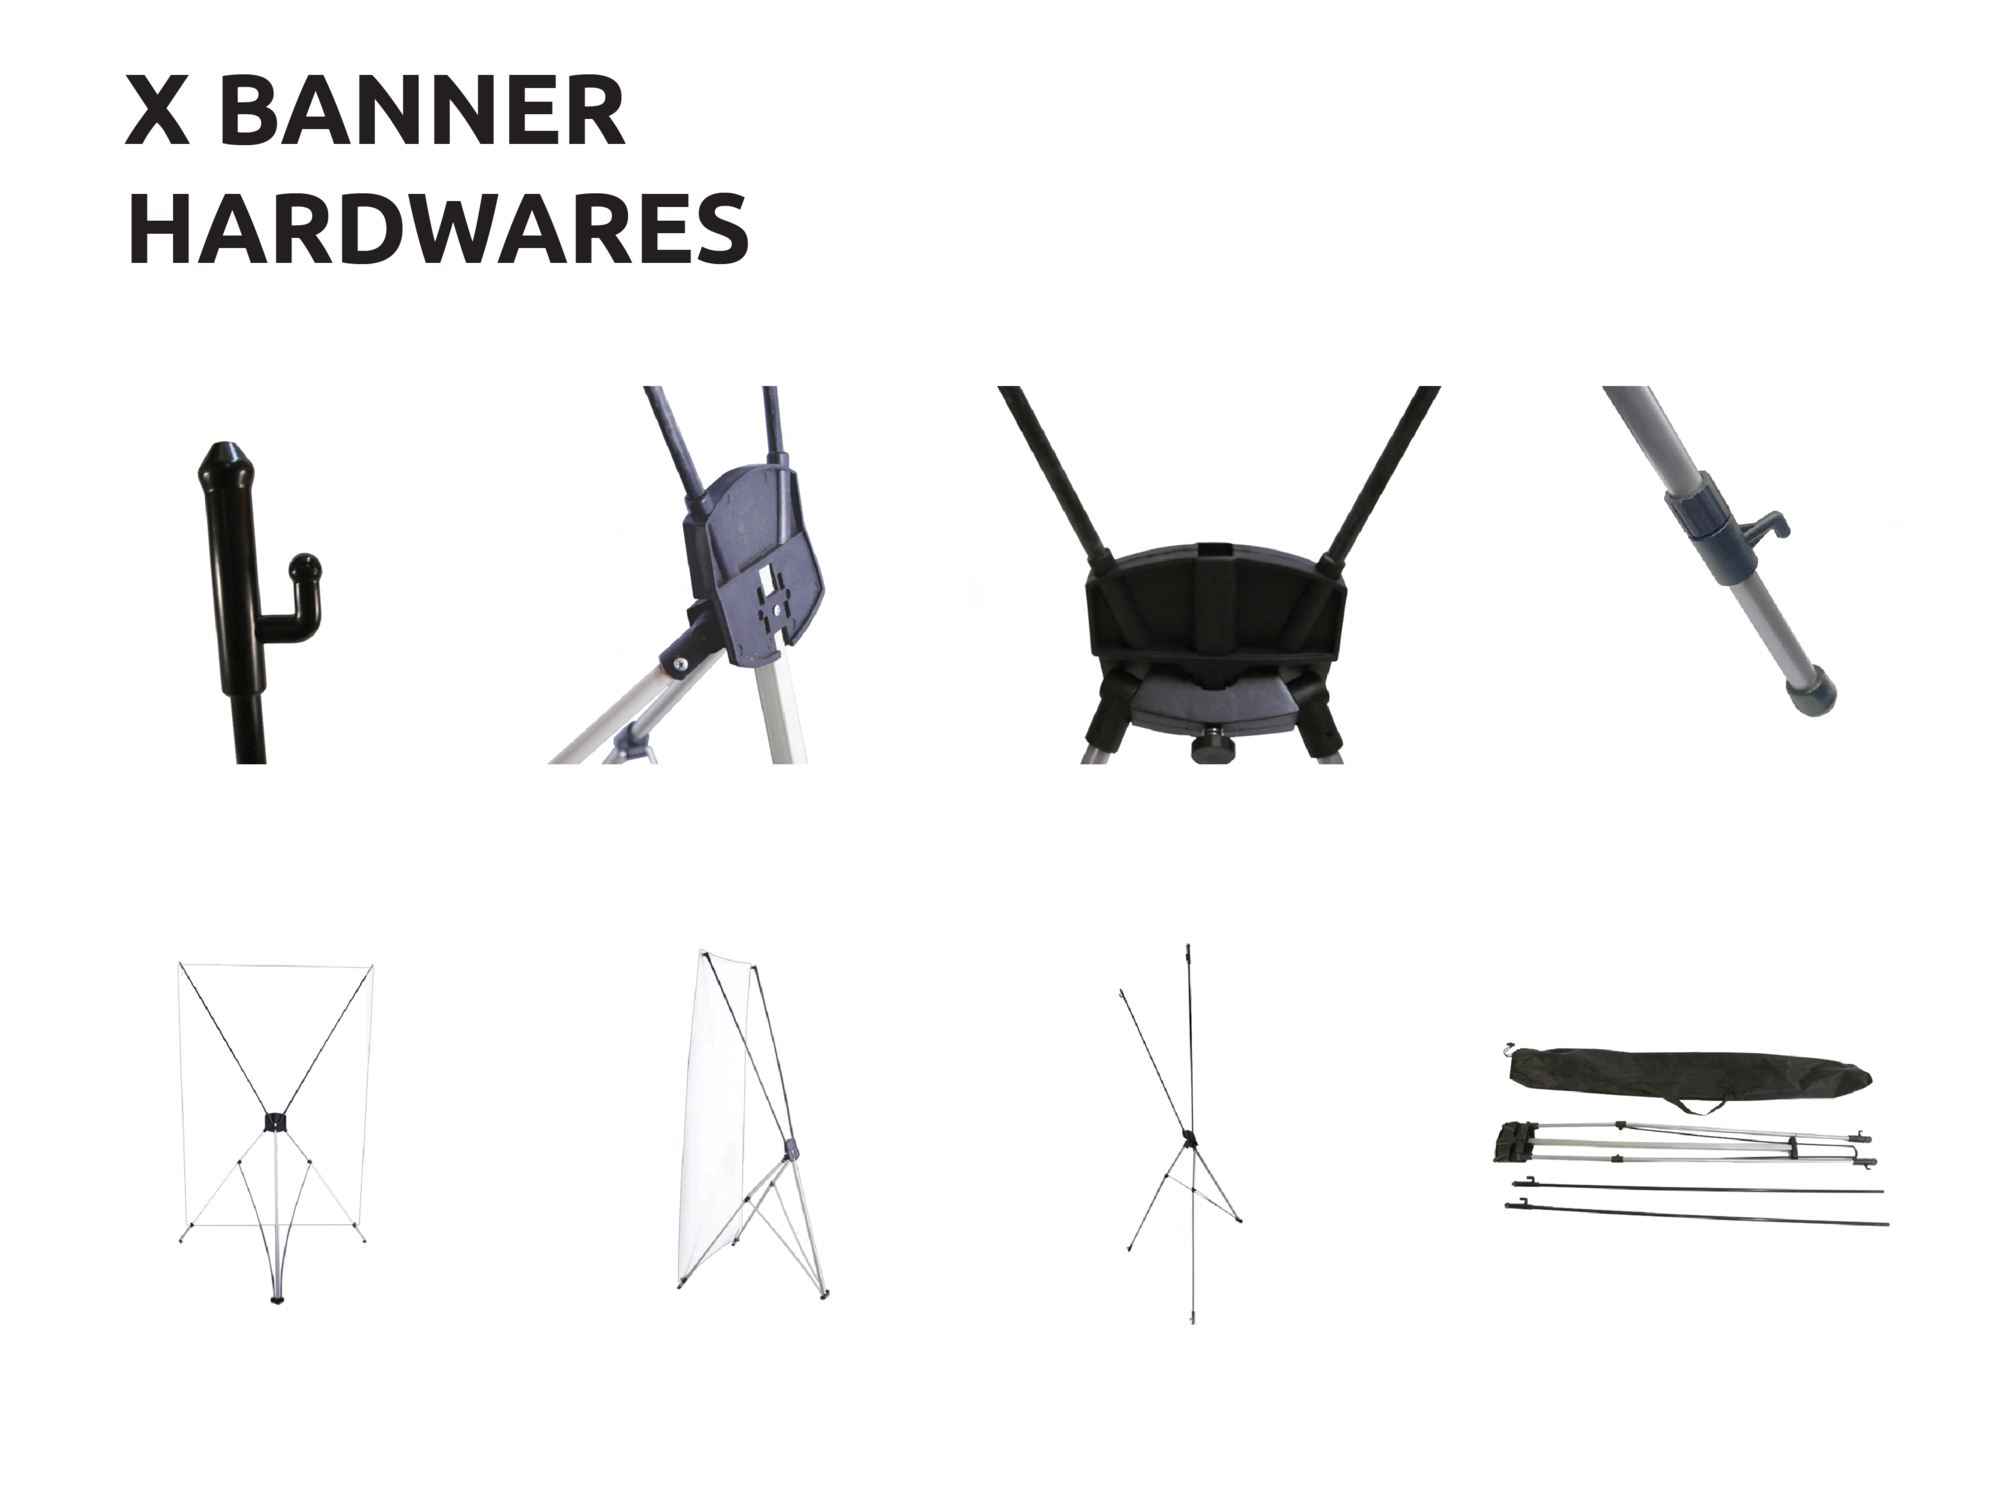 https://www.dagraphicdesign.com.au/images/products_gallery_images/X_Banner_Hardware.png